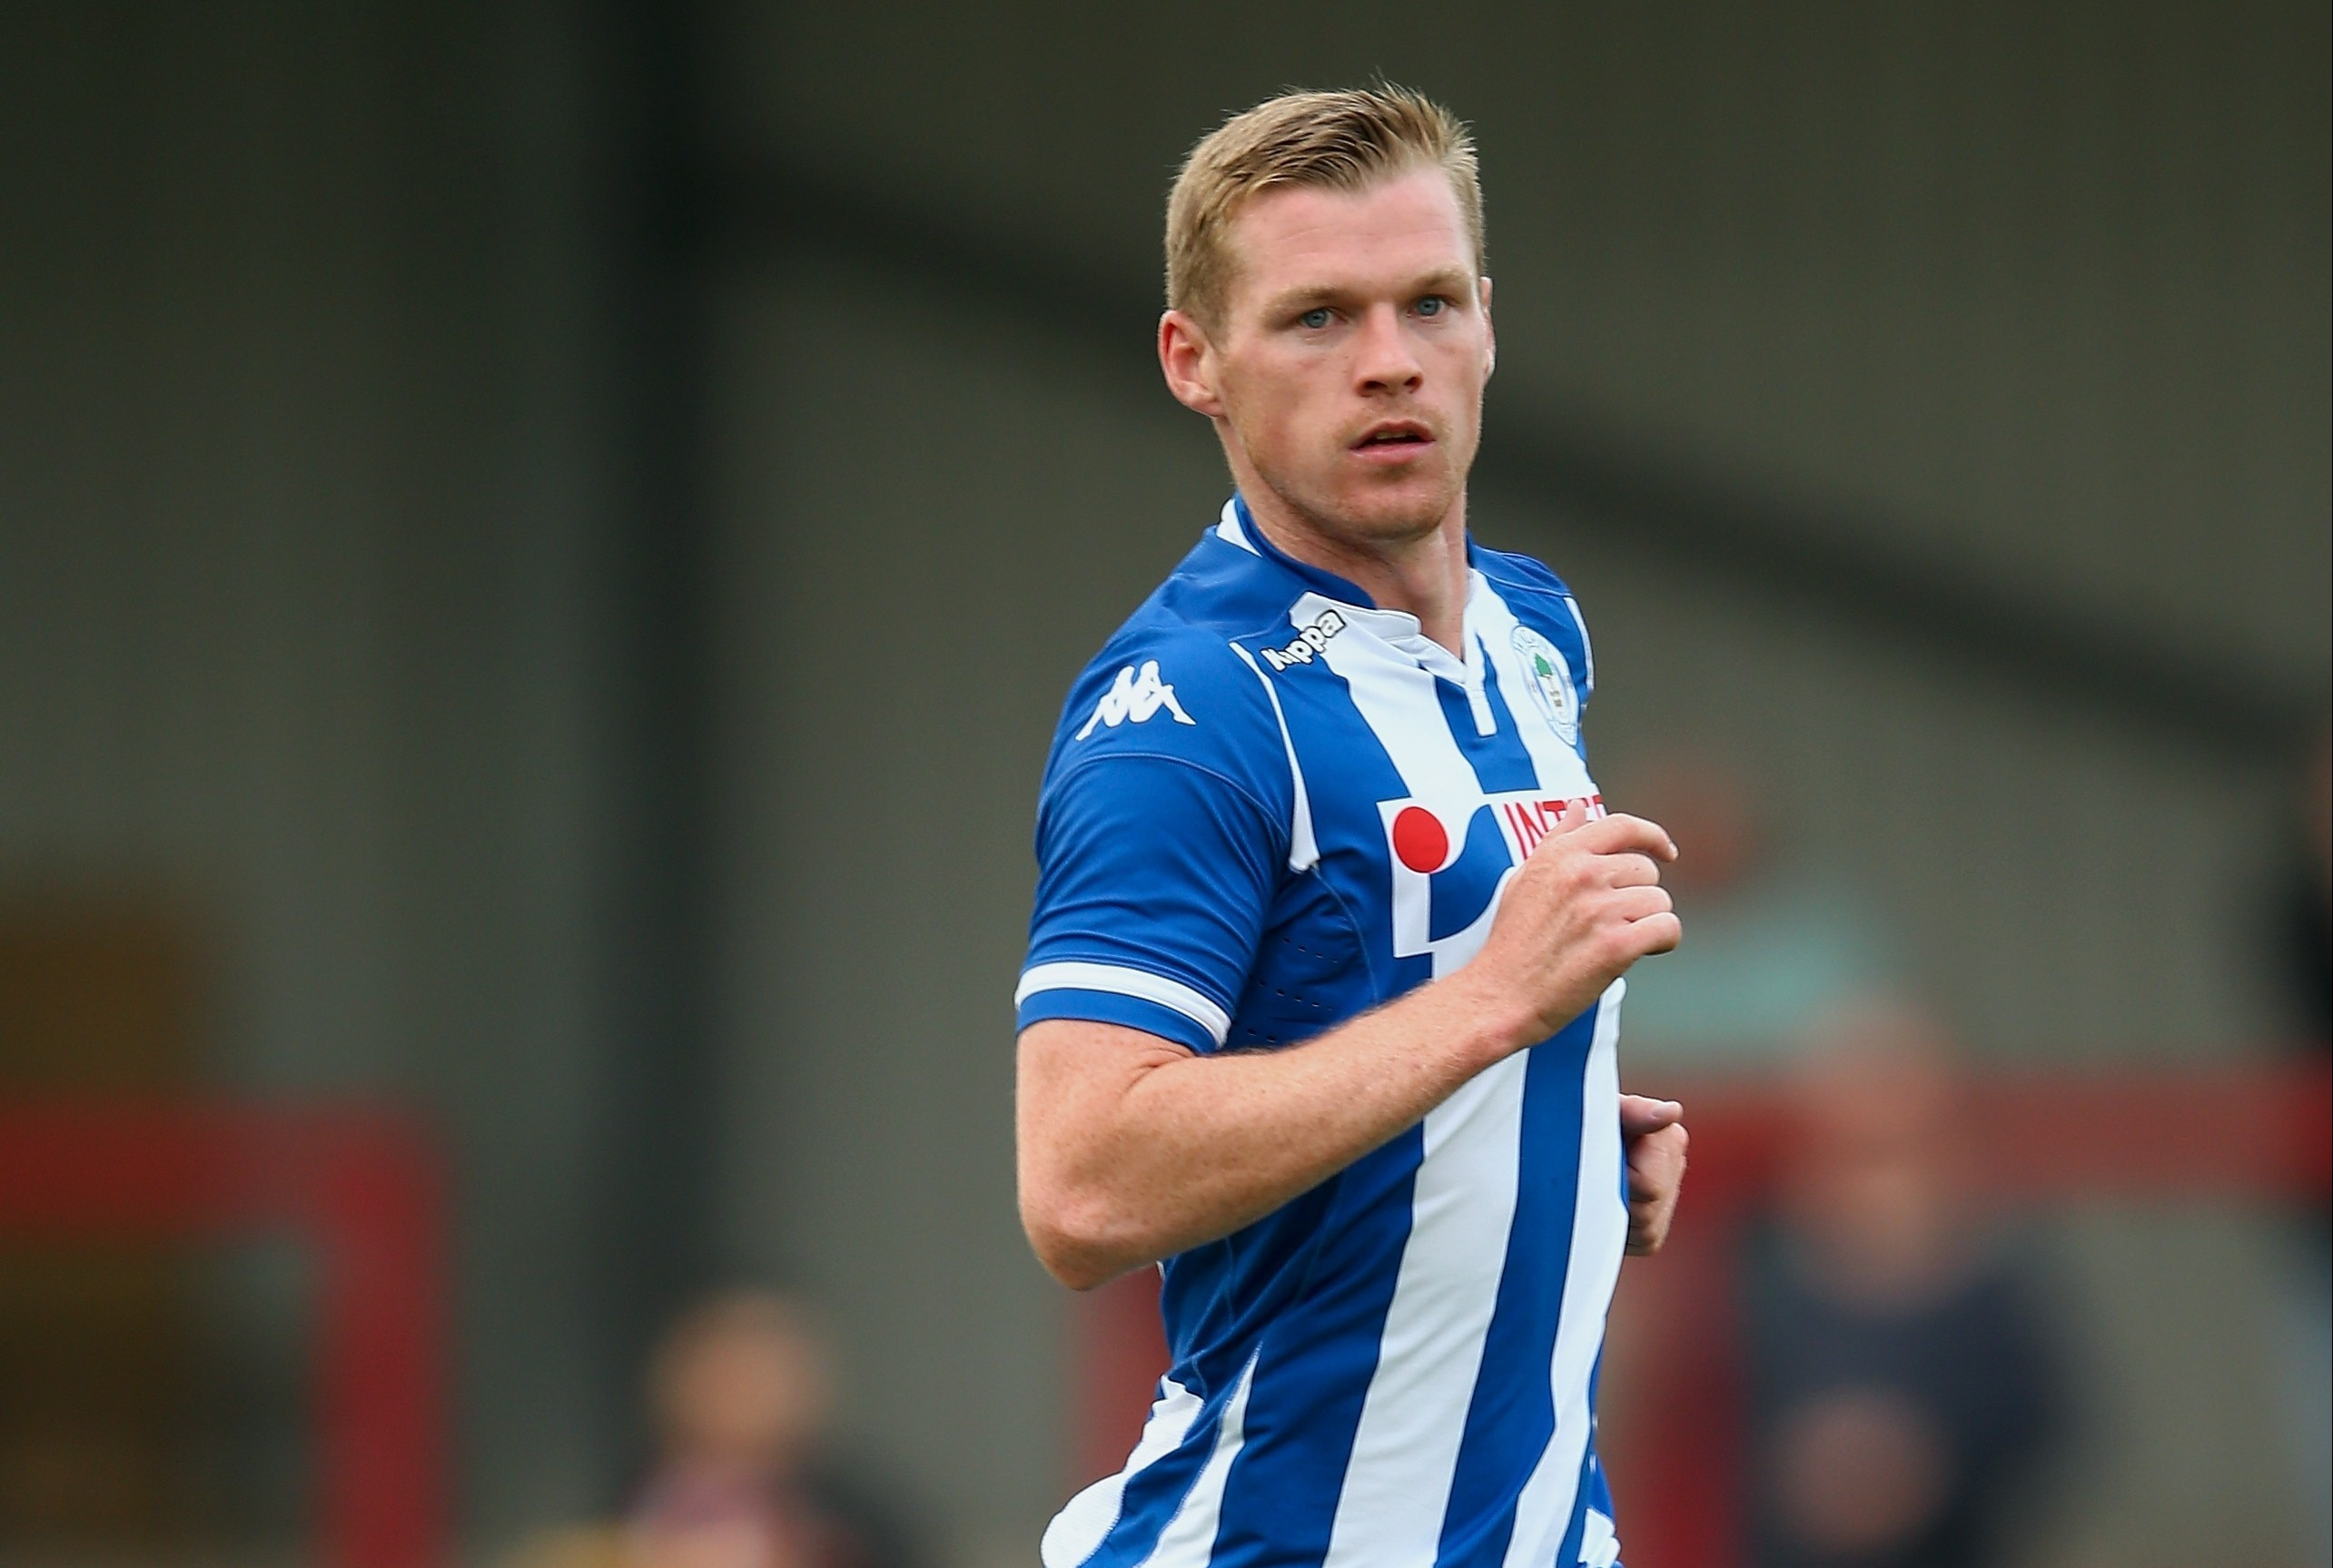 Billy McKay in action for Wigan Athletic